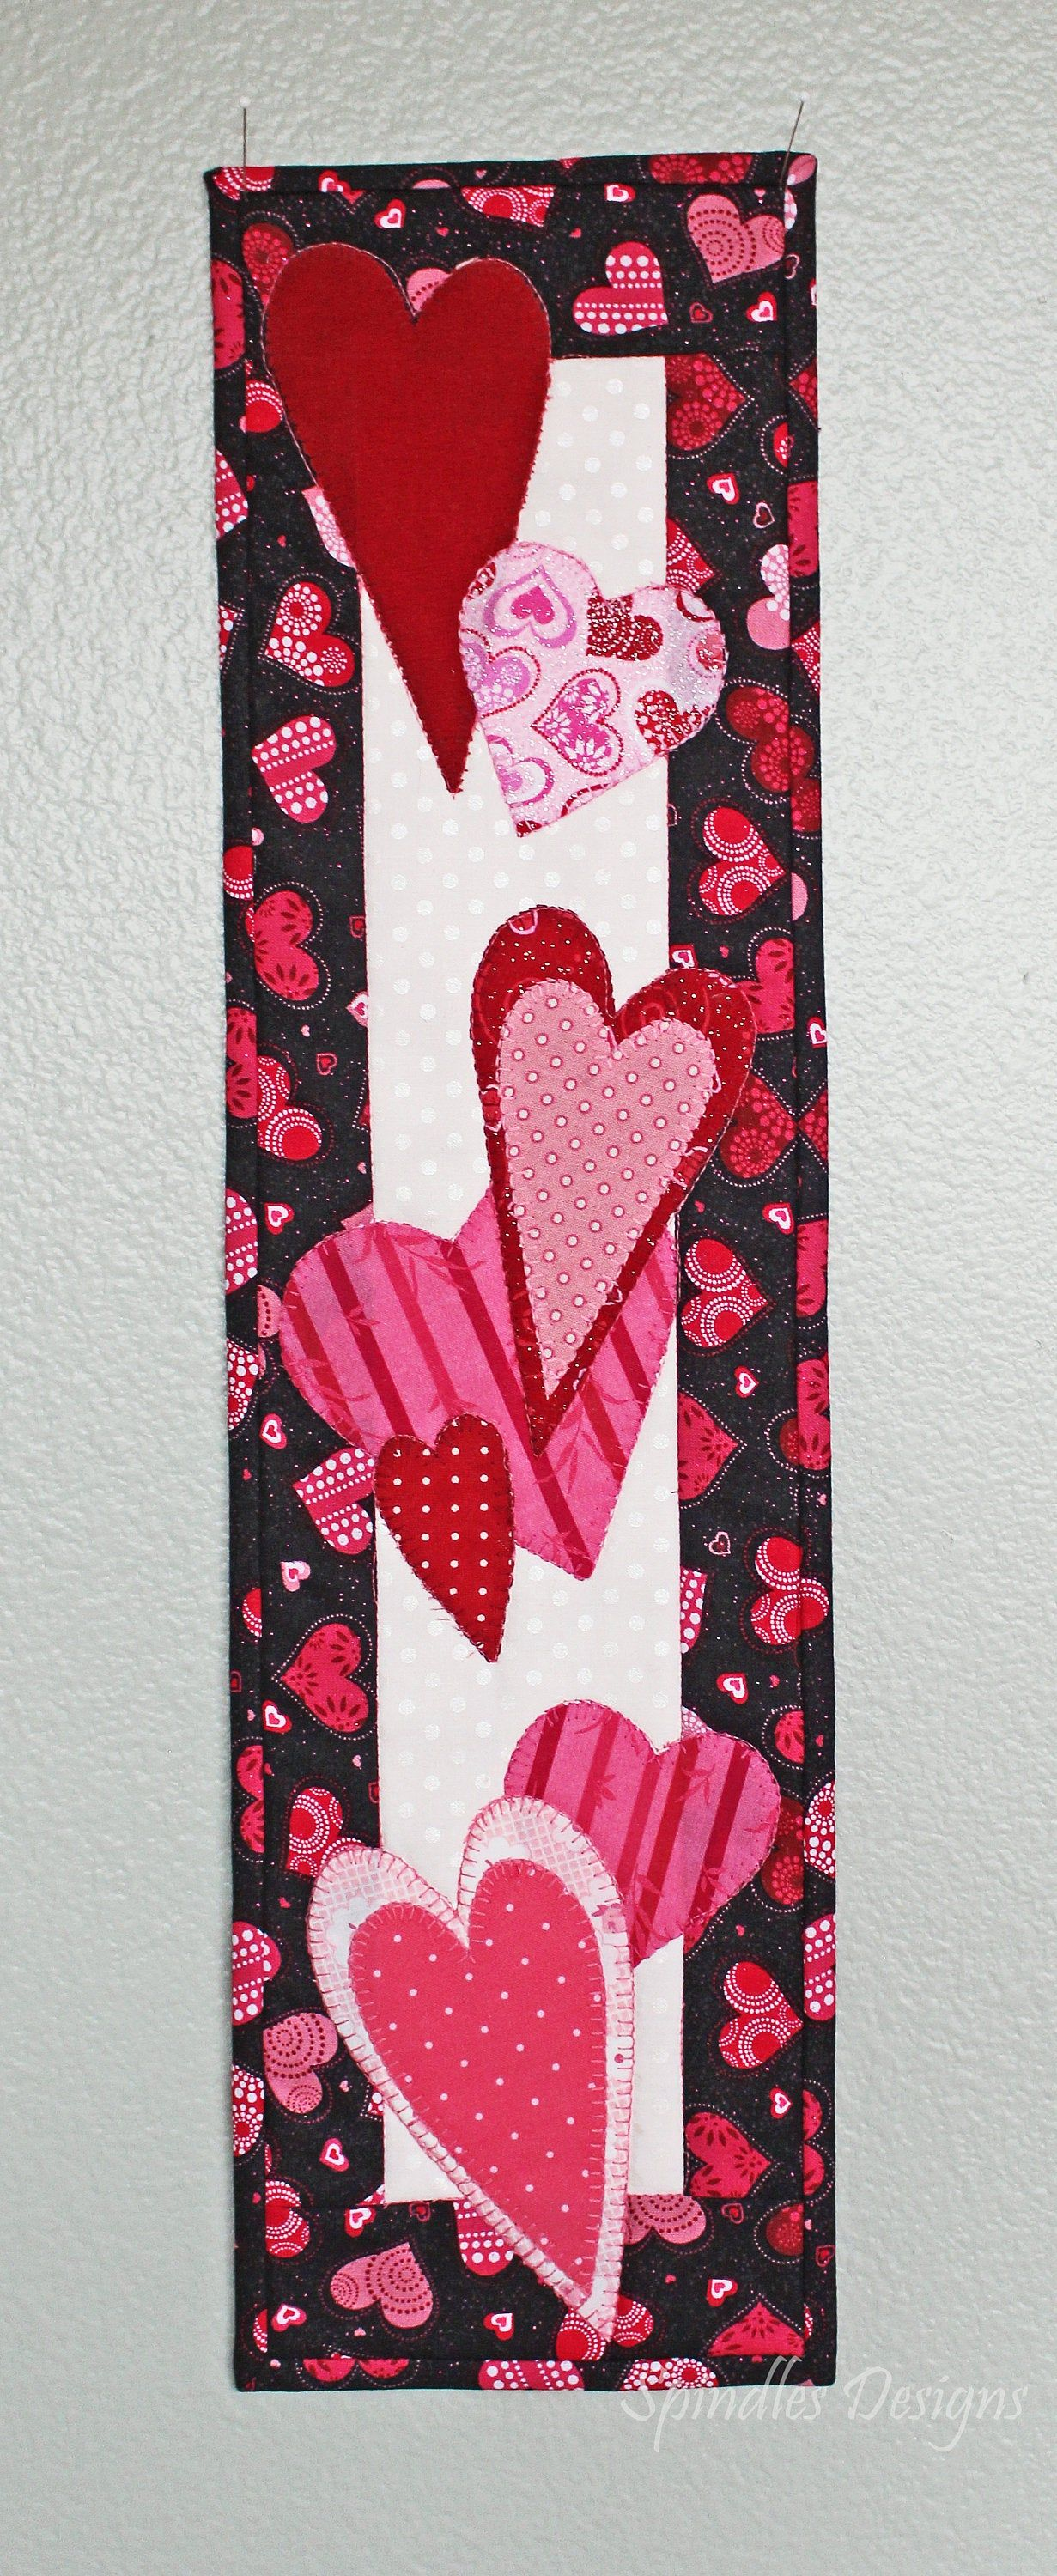 Valentine S Day Wall Hanging Valentine S Decor Etsy In 2020 Valentine Decorations Sewing Machine Quilting Wall Hanging